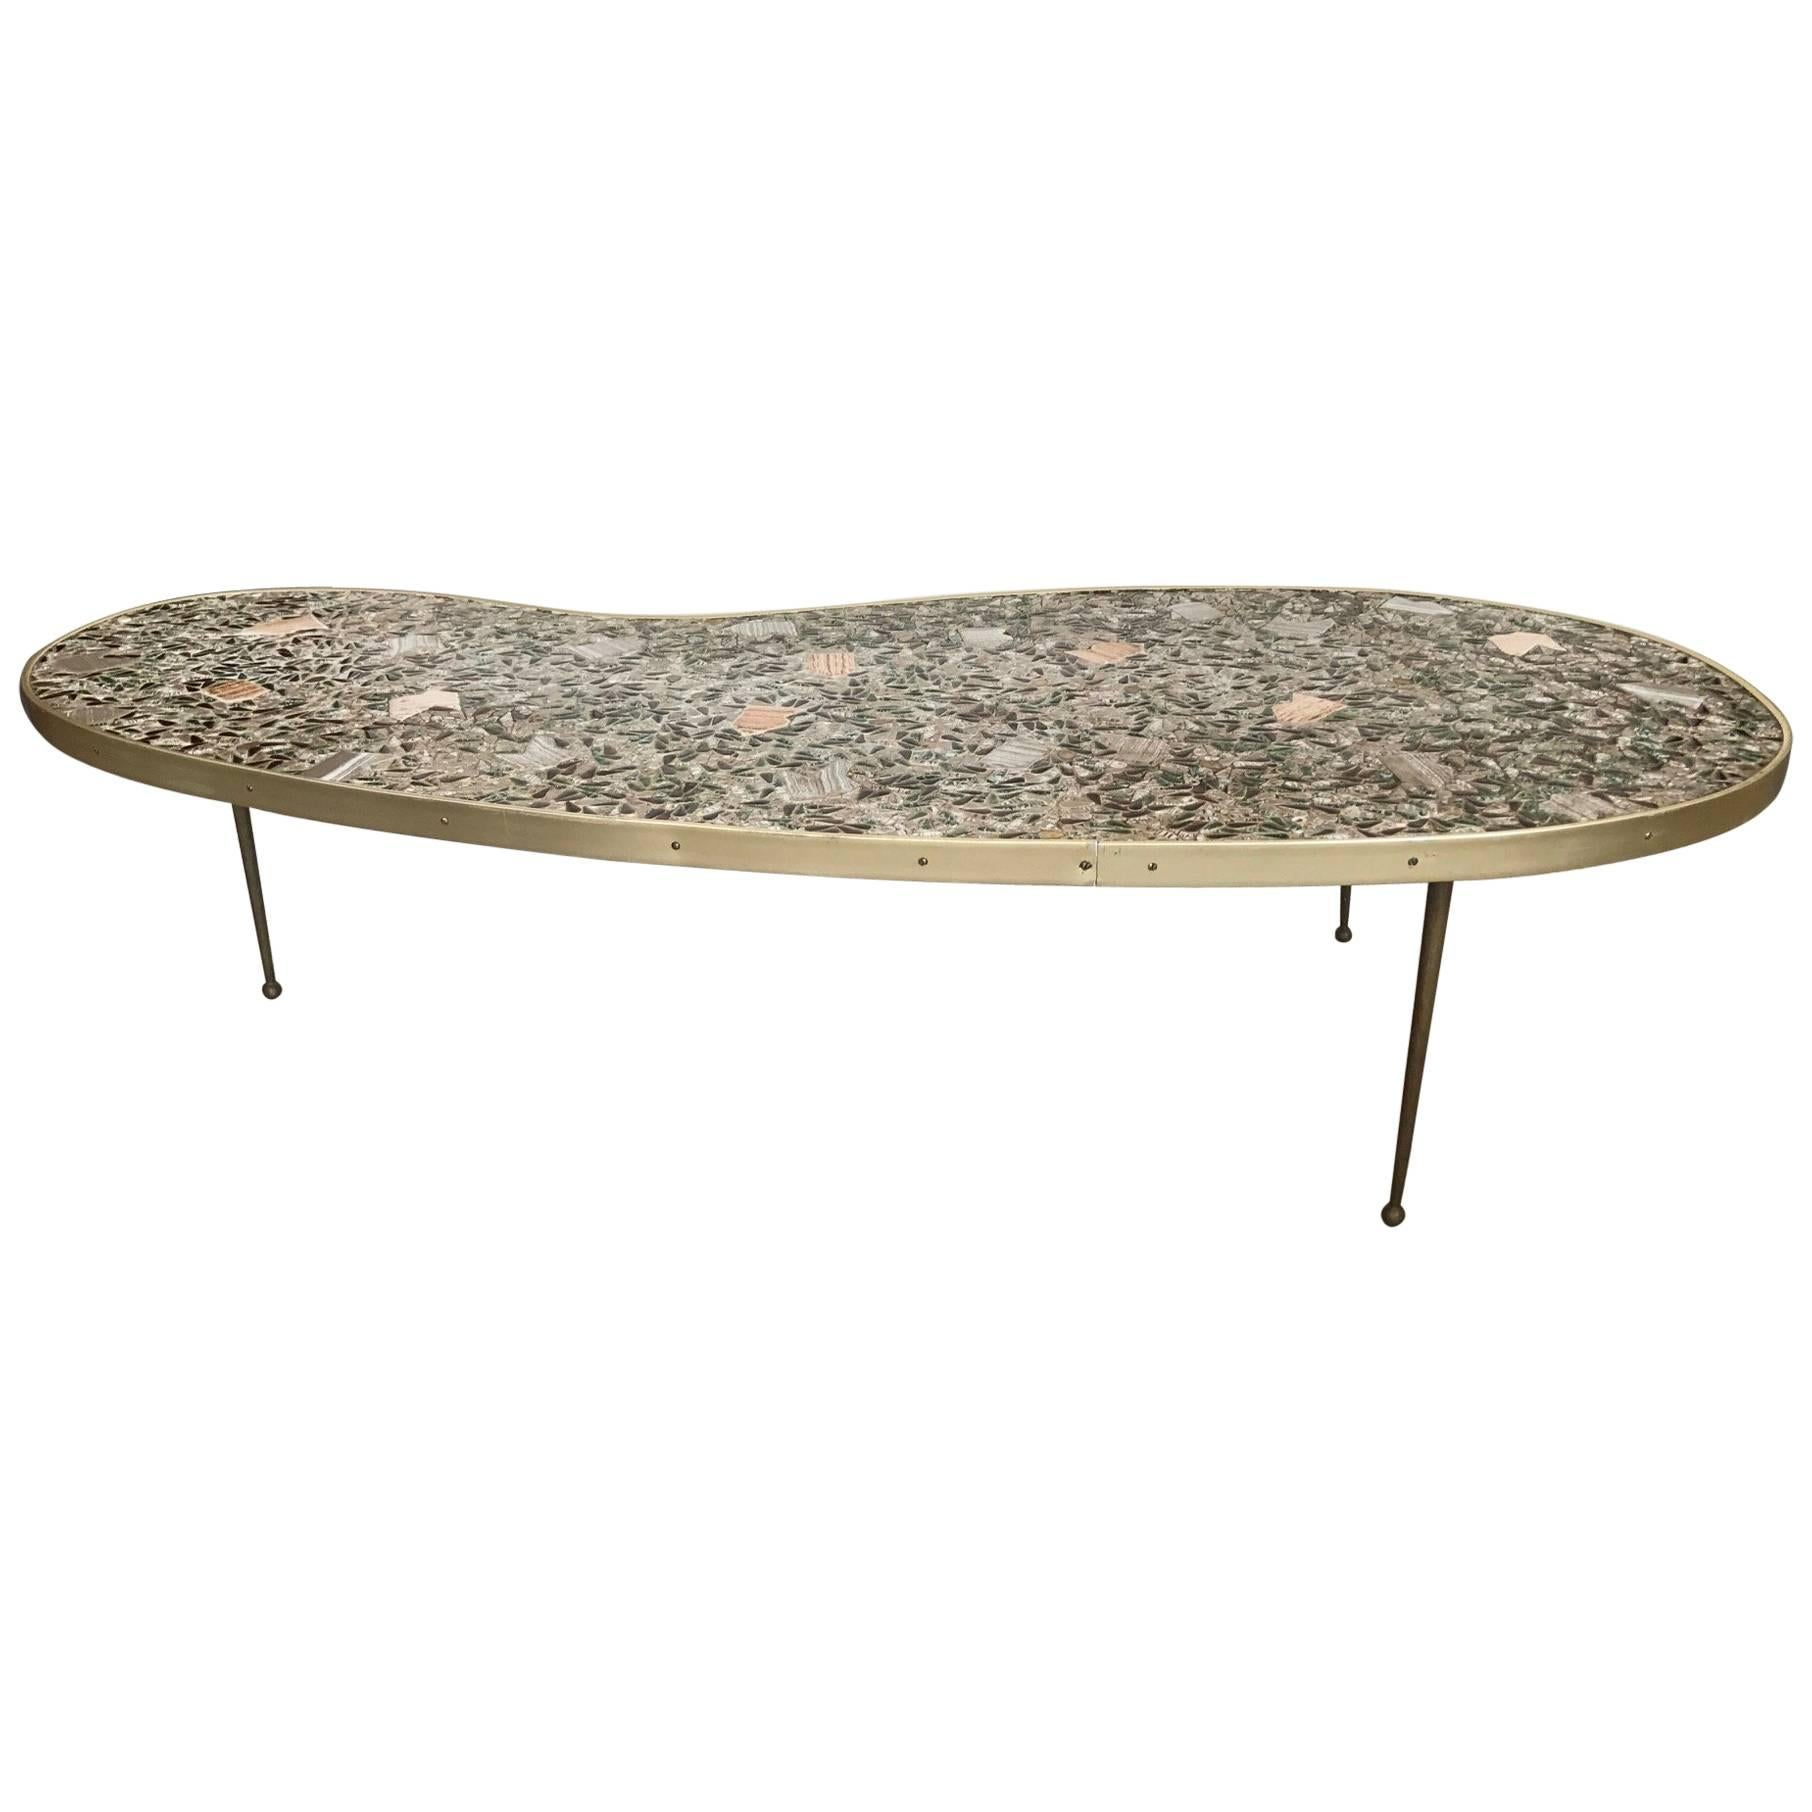 Unusual Tile Biomorphic Coffee Table For Sale at 1stdibs